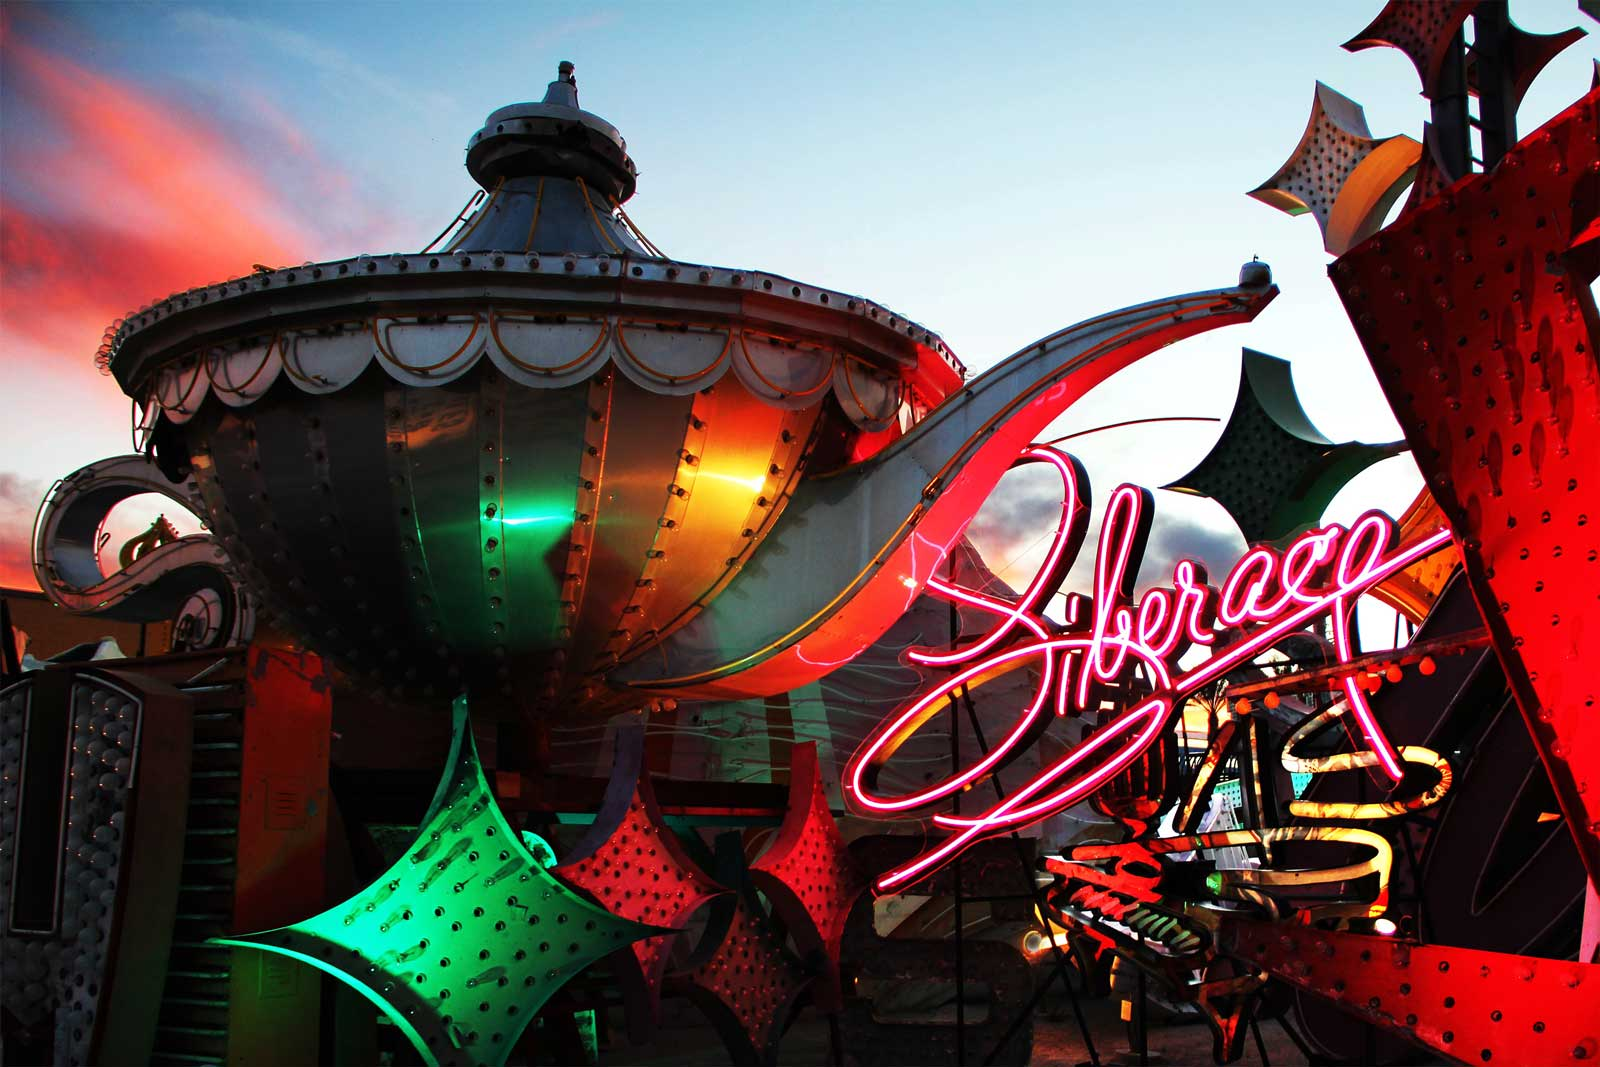 Liberace's neon sign is just one of the pieces of Vintage Vegas you'll see at The Neon Museum.